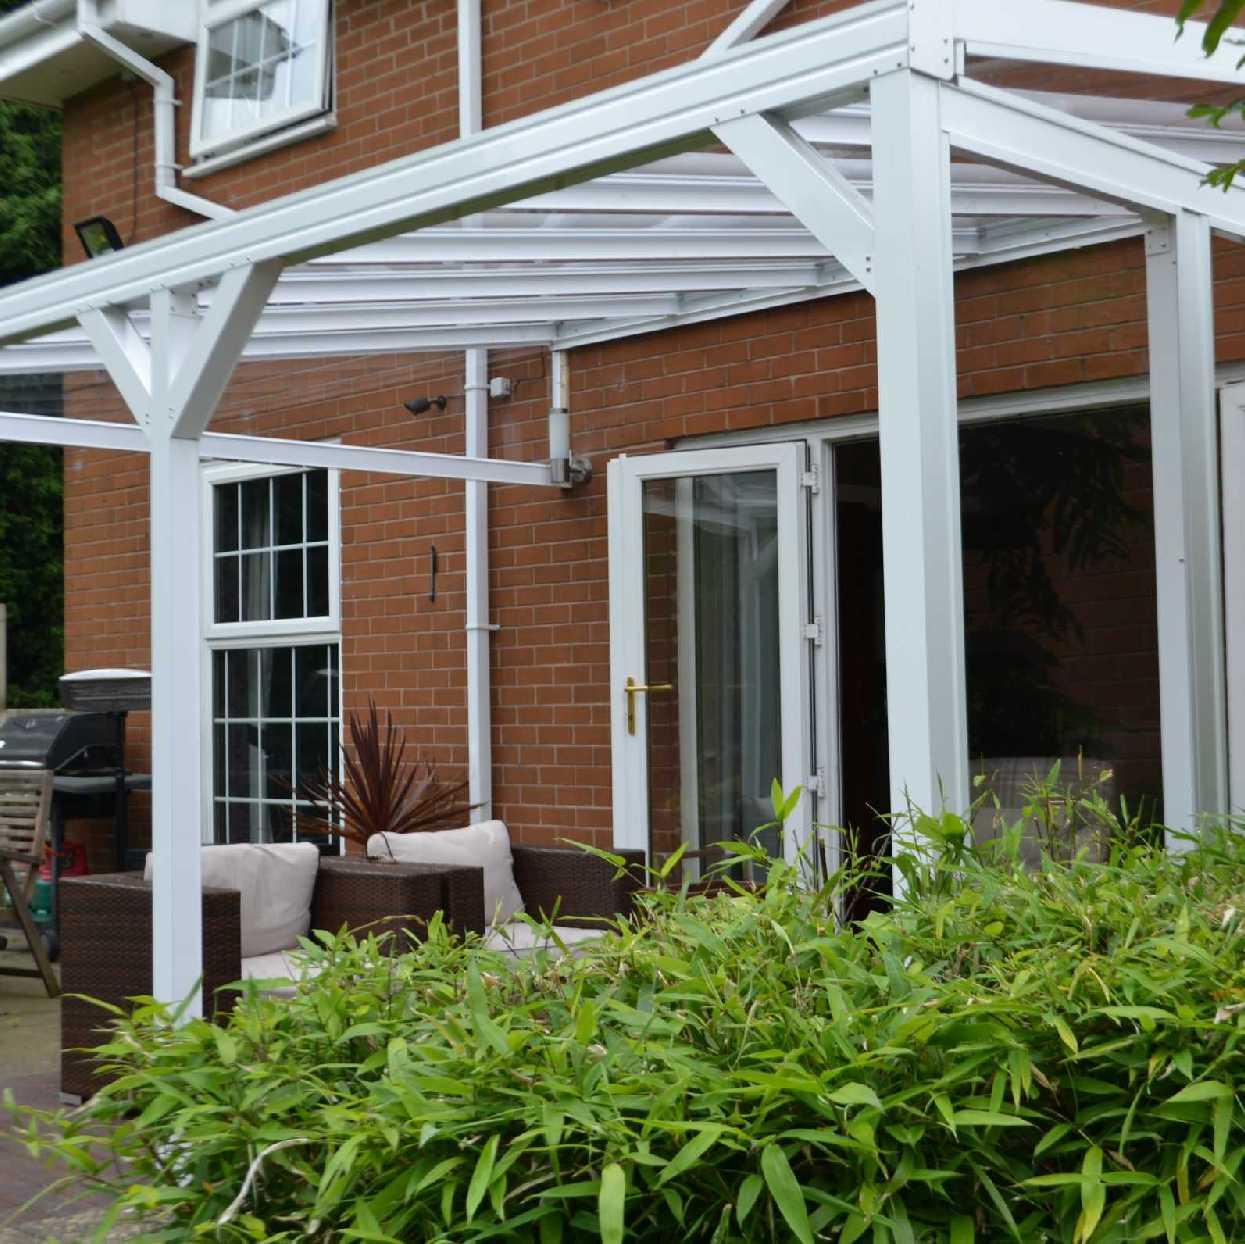 Omega Smart Lean-To Canopy with 6mm Glass Clear Plate Polycarbonate Glazing - 4.9m (W) x 2.0m (P), (3) Supporting Posts from Omega Build